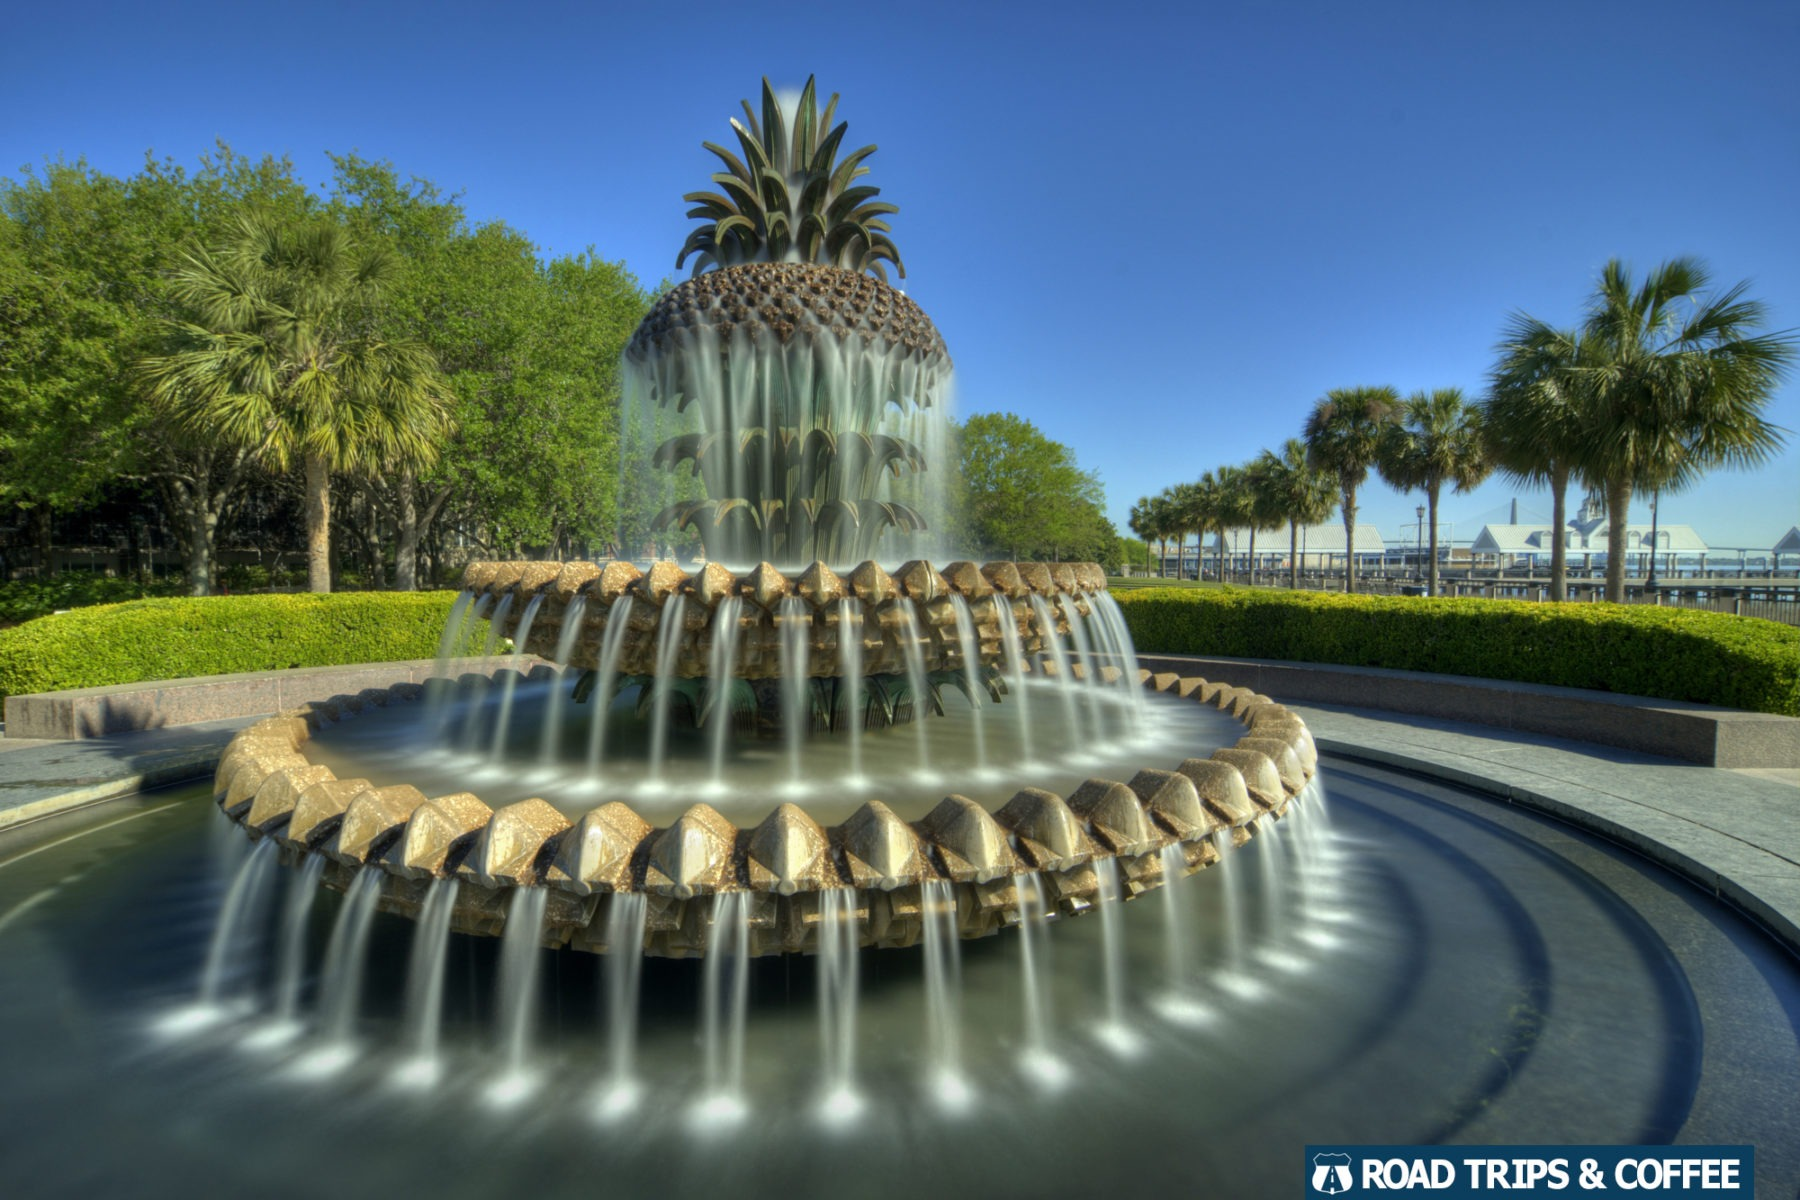 Water spills out of a concrete foundtain shaped like a pineapple at Waterfront Park in Charleston, South Carolina